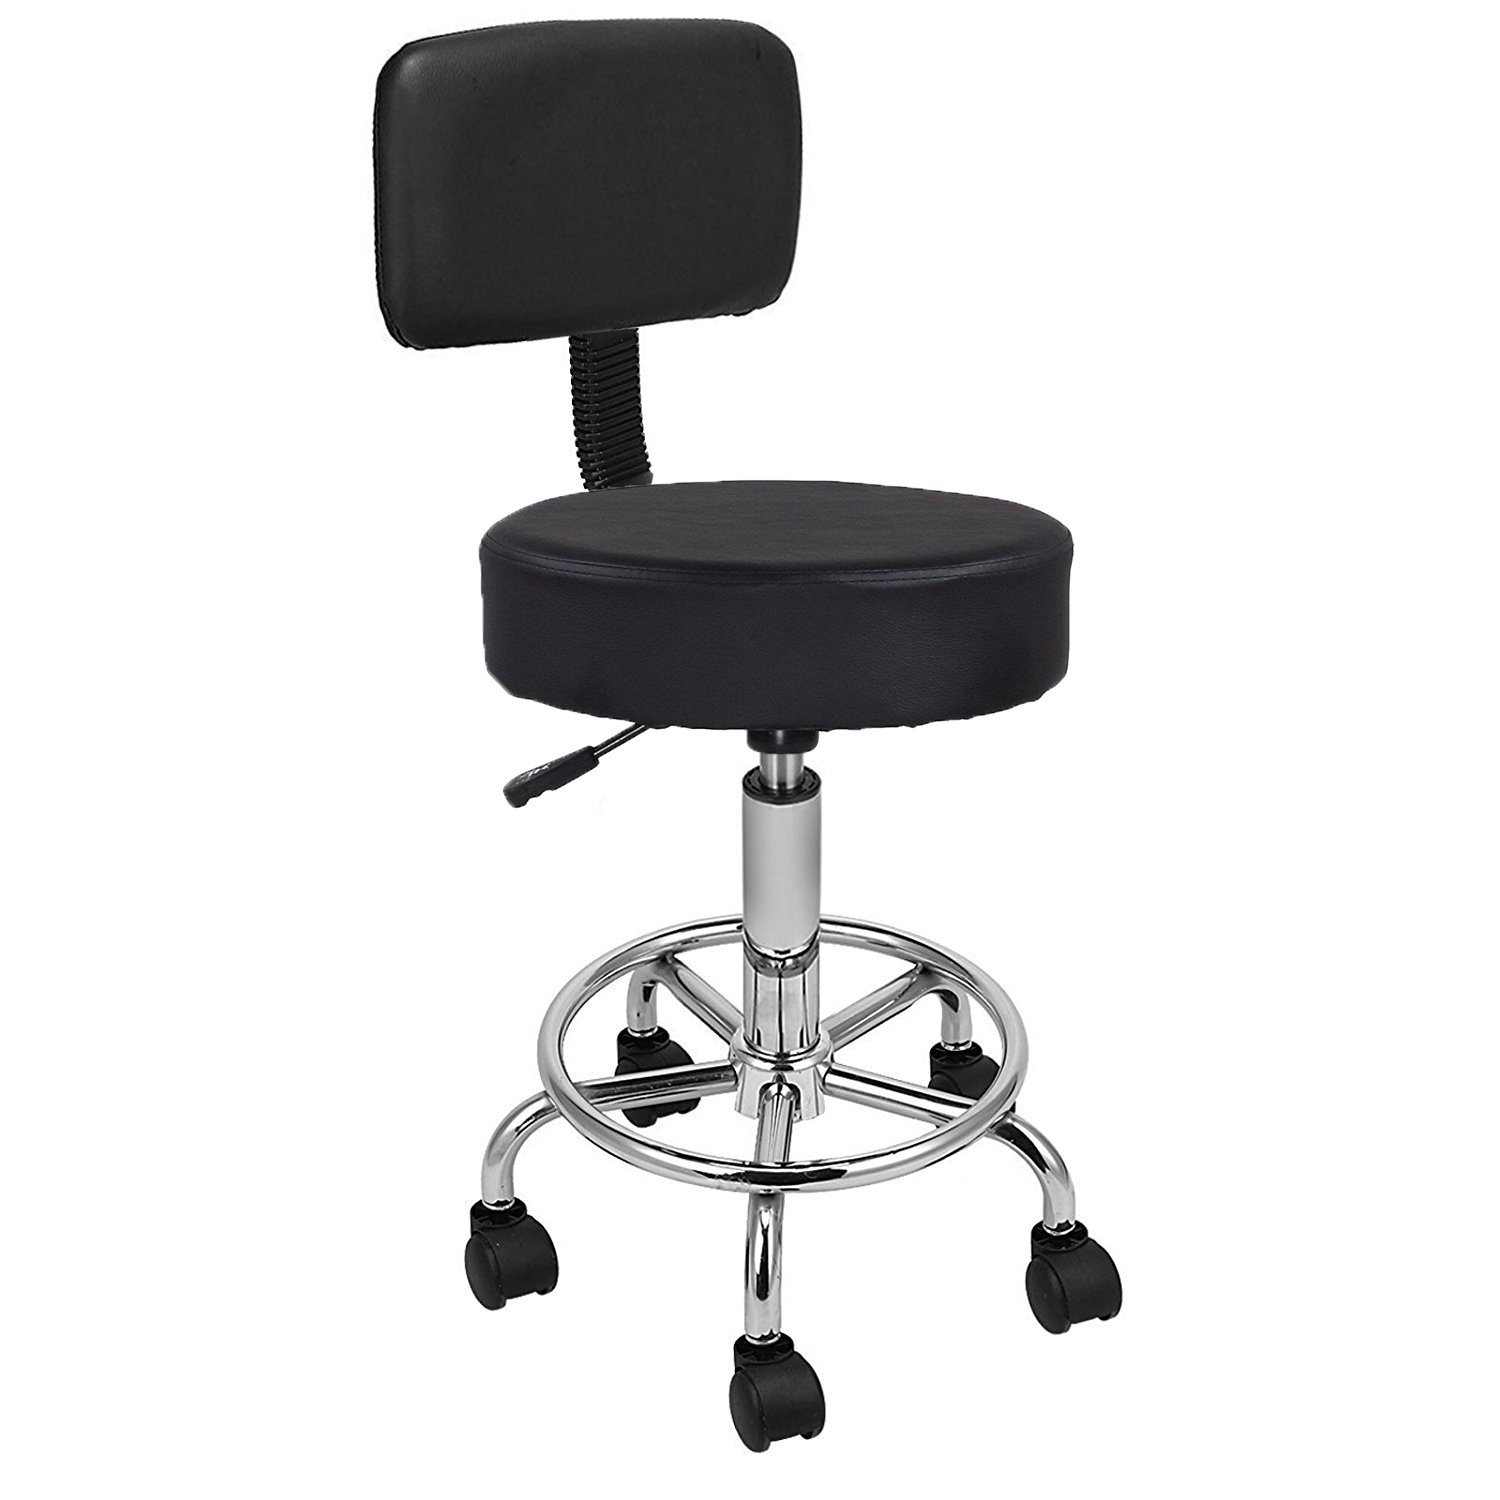 Display4top Black Adjustable Rolling Cushion Tattoo Massage Hydraulic Salon Stool with Back,5 Locking Wheels (Stainless_Steel) 1100023